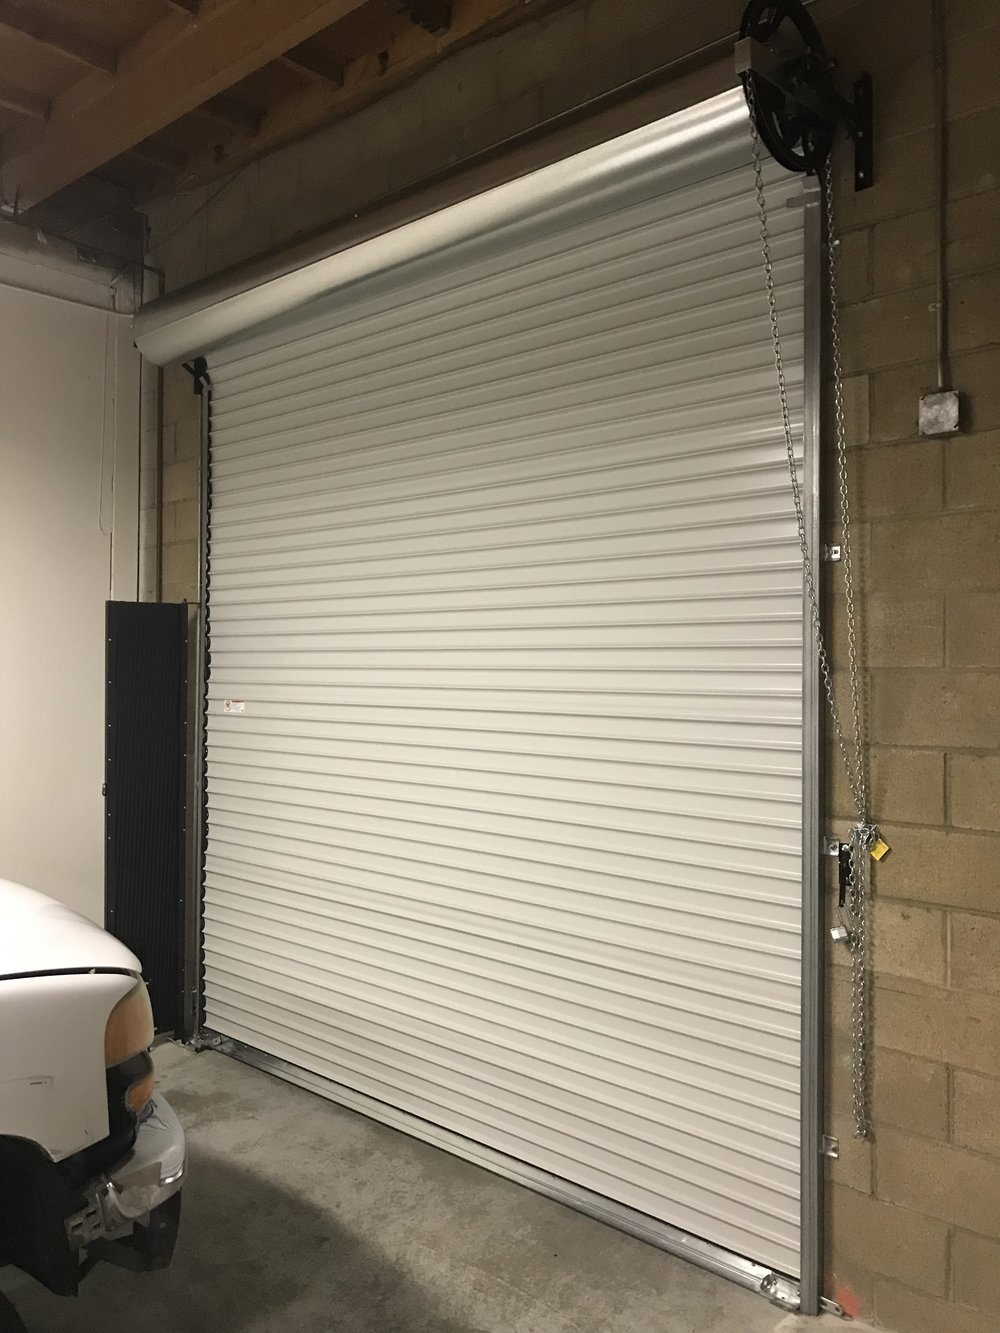 Commercial Corrugated Steel Door Installation, Repair, Maintenance And  Security. 24 Hour Emergency Service Dispatched From Riverside, California